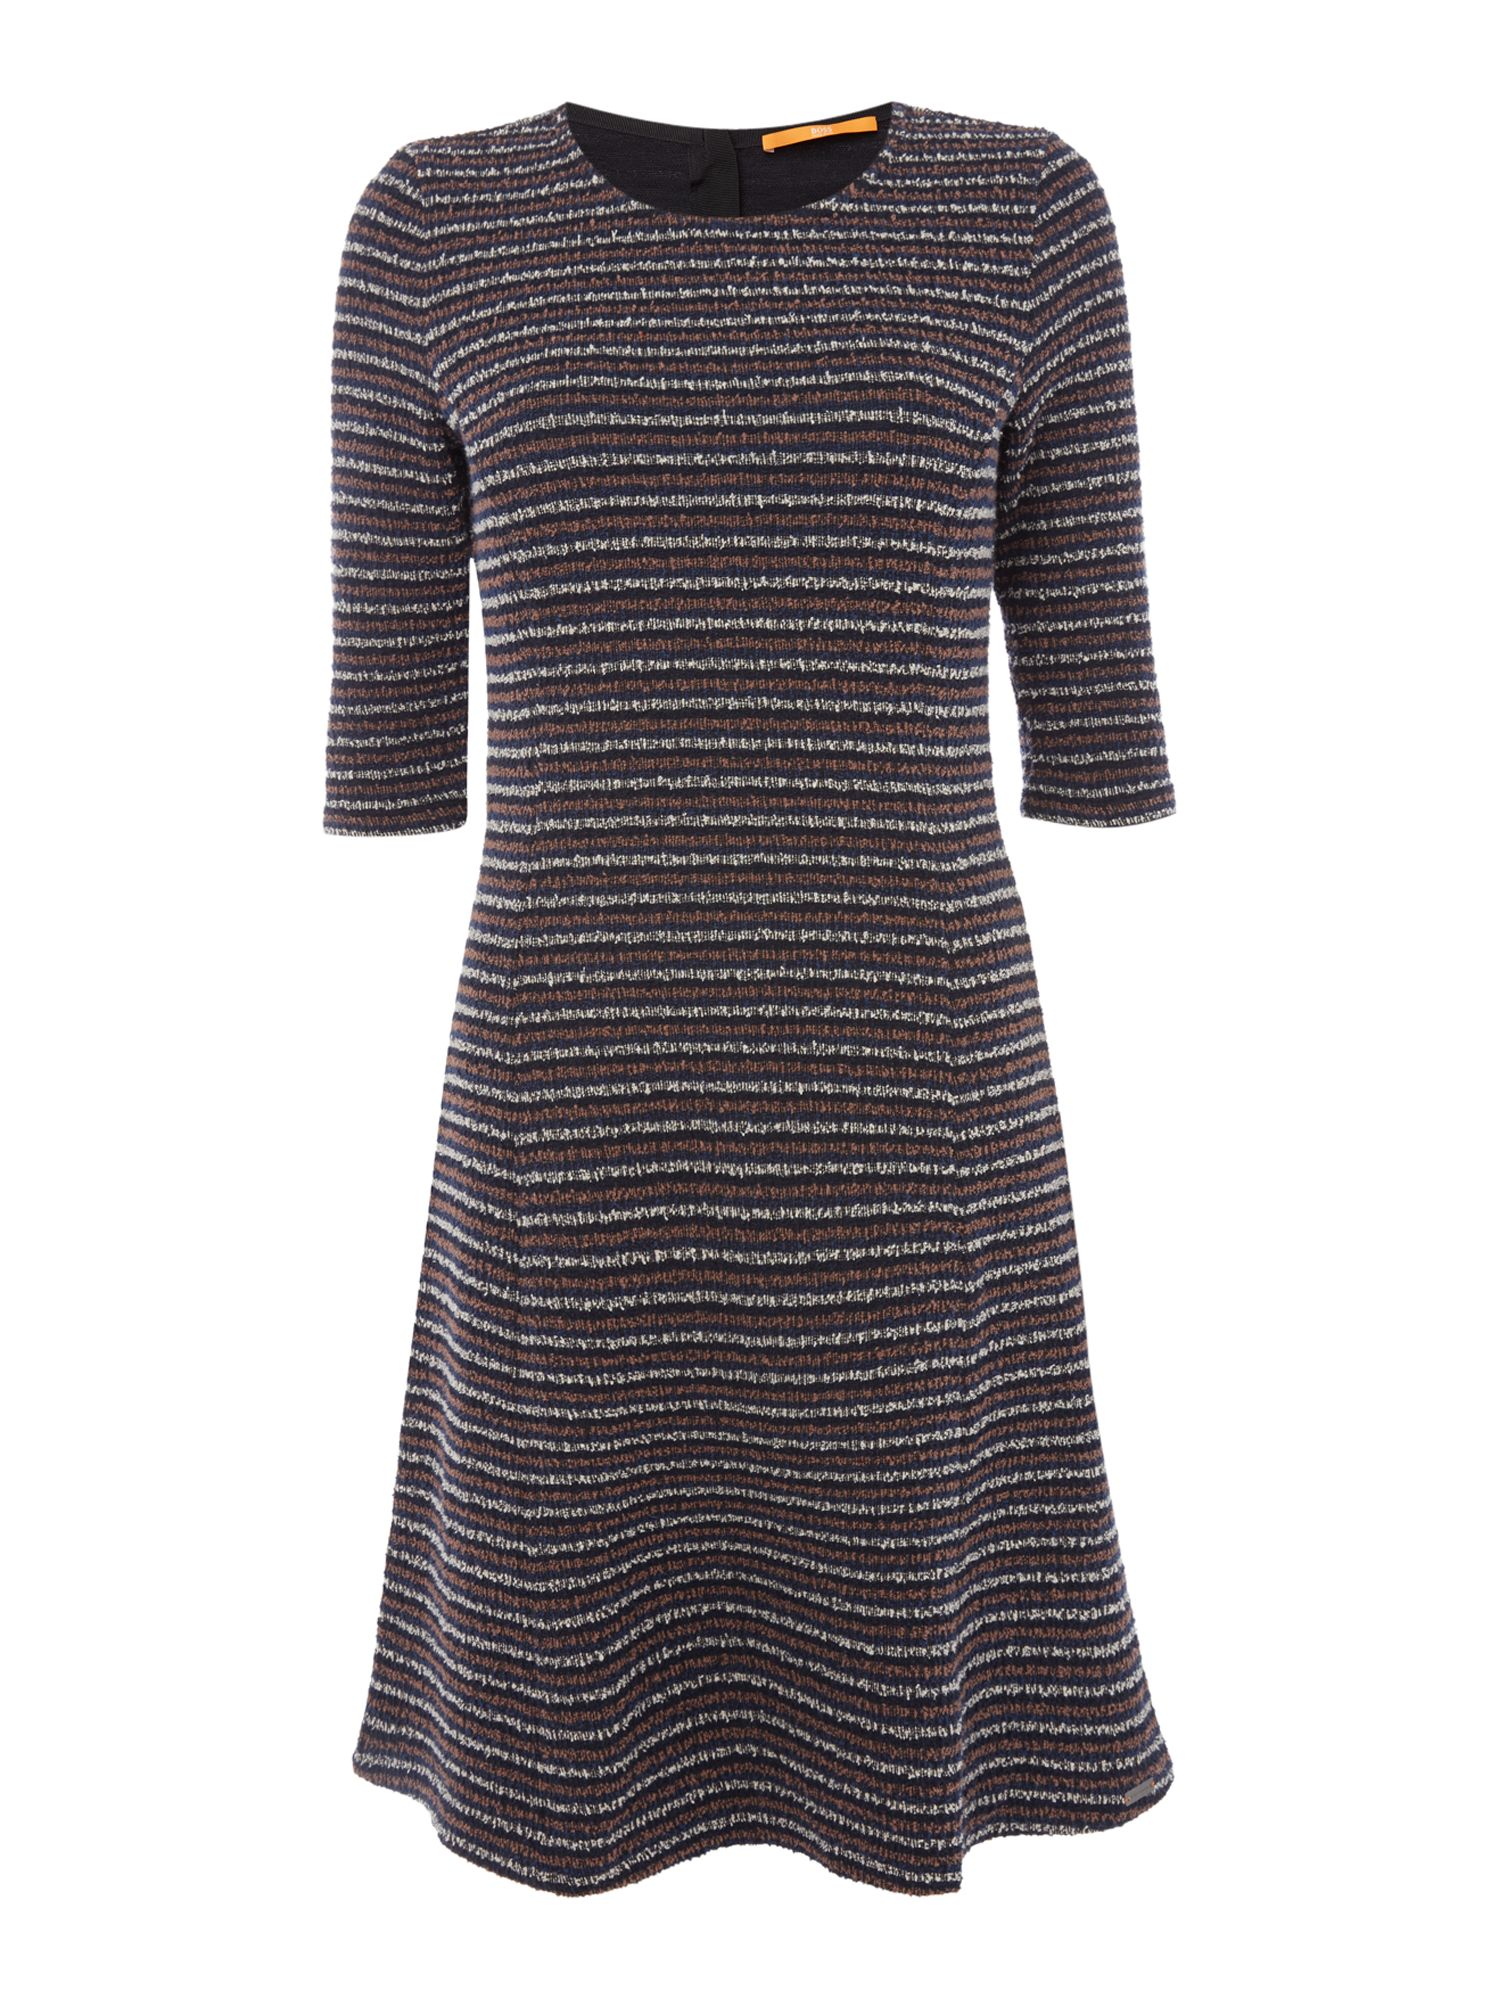 Hugo Boss Dacoca Knitted Crew Neck Dress in Dark Blue, Dark Blue